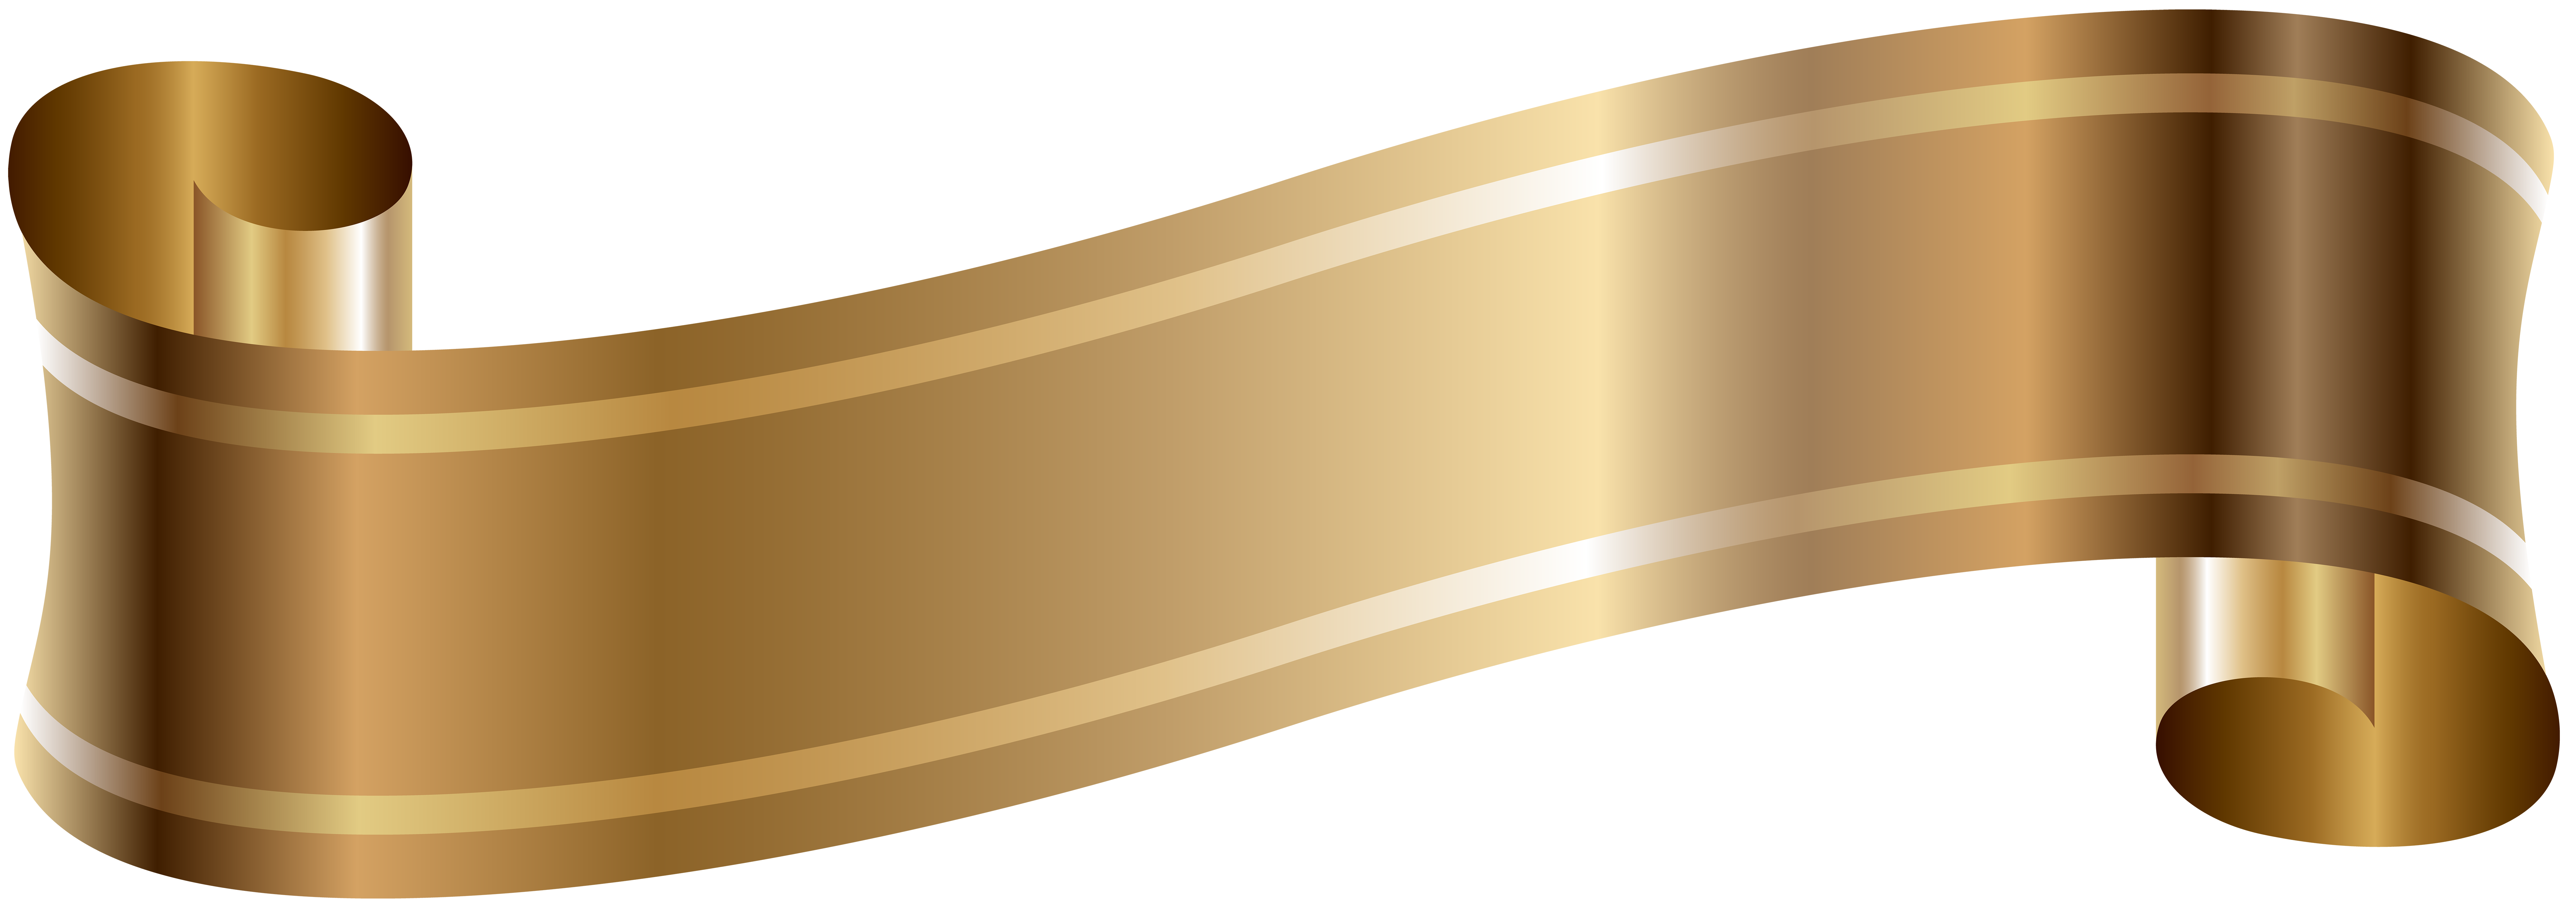 Clipart piano gold. Elegant banner old png